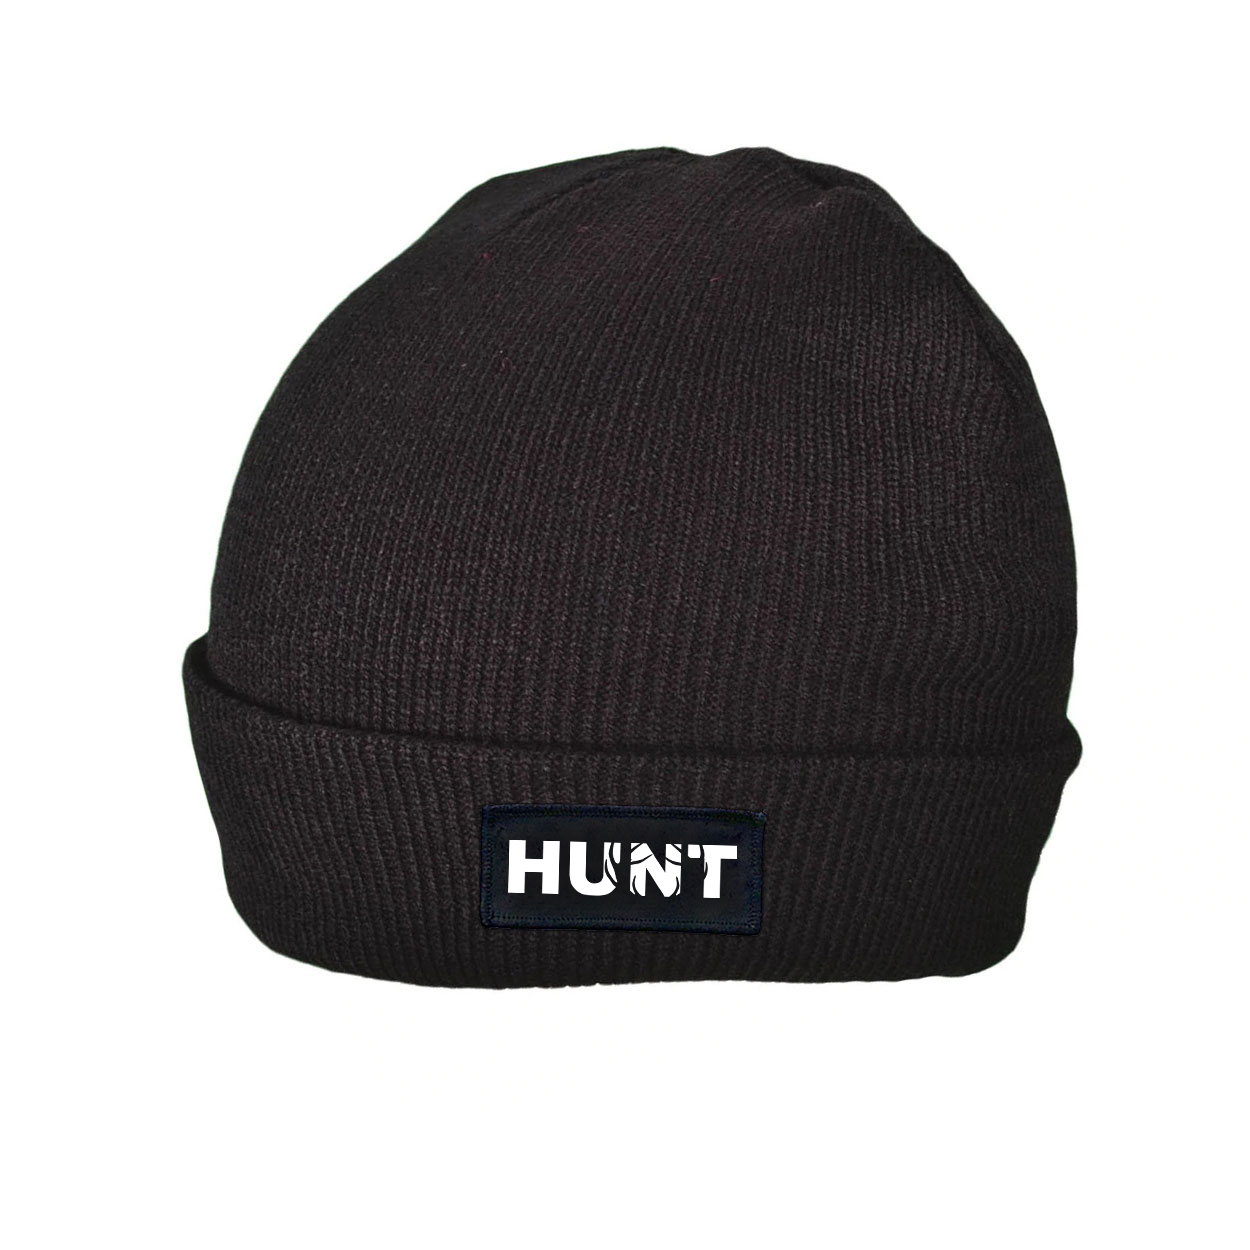 Hunt Rack Logo Night Out Woven Patch Roll Up Skully Beanie Black (White Logo)